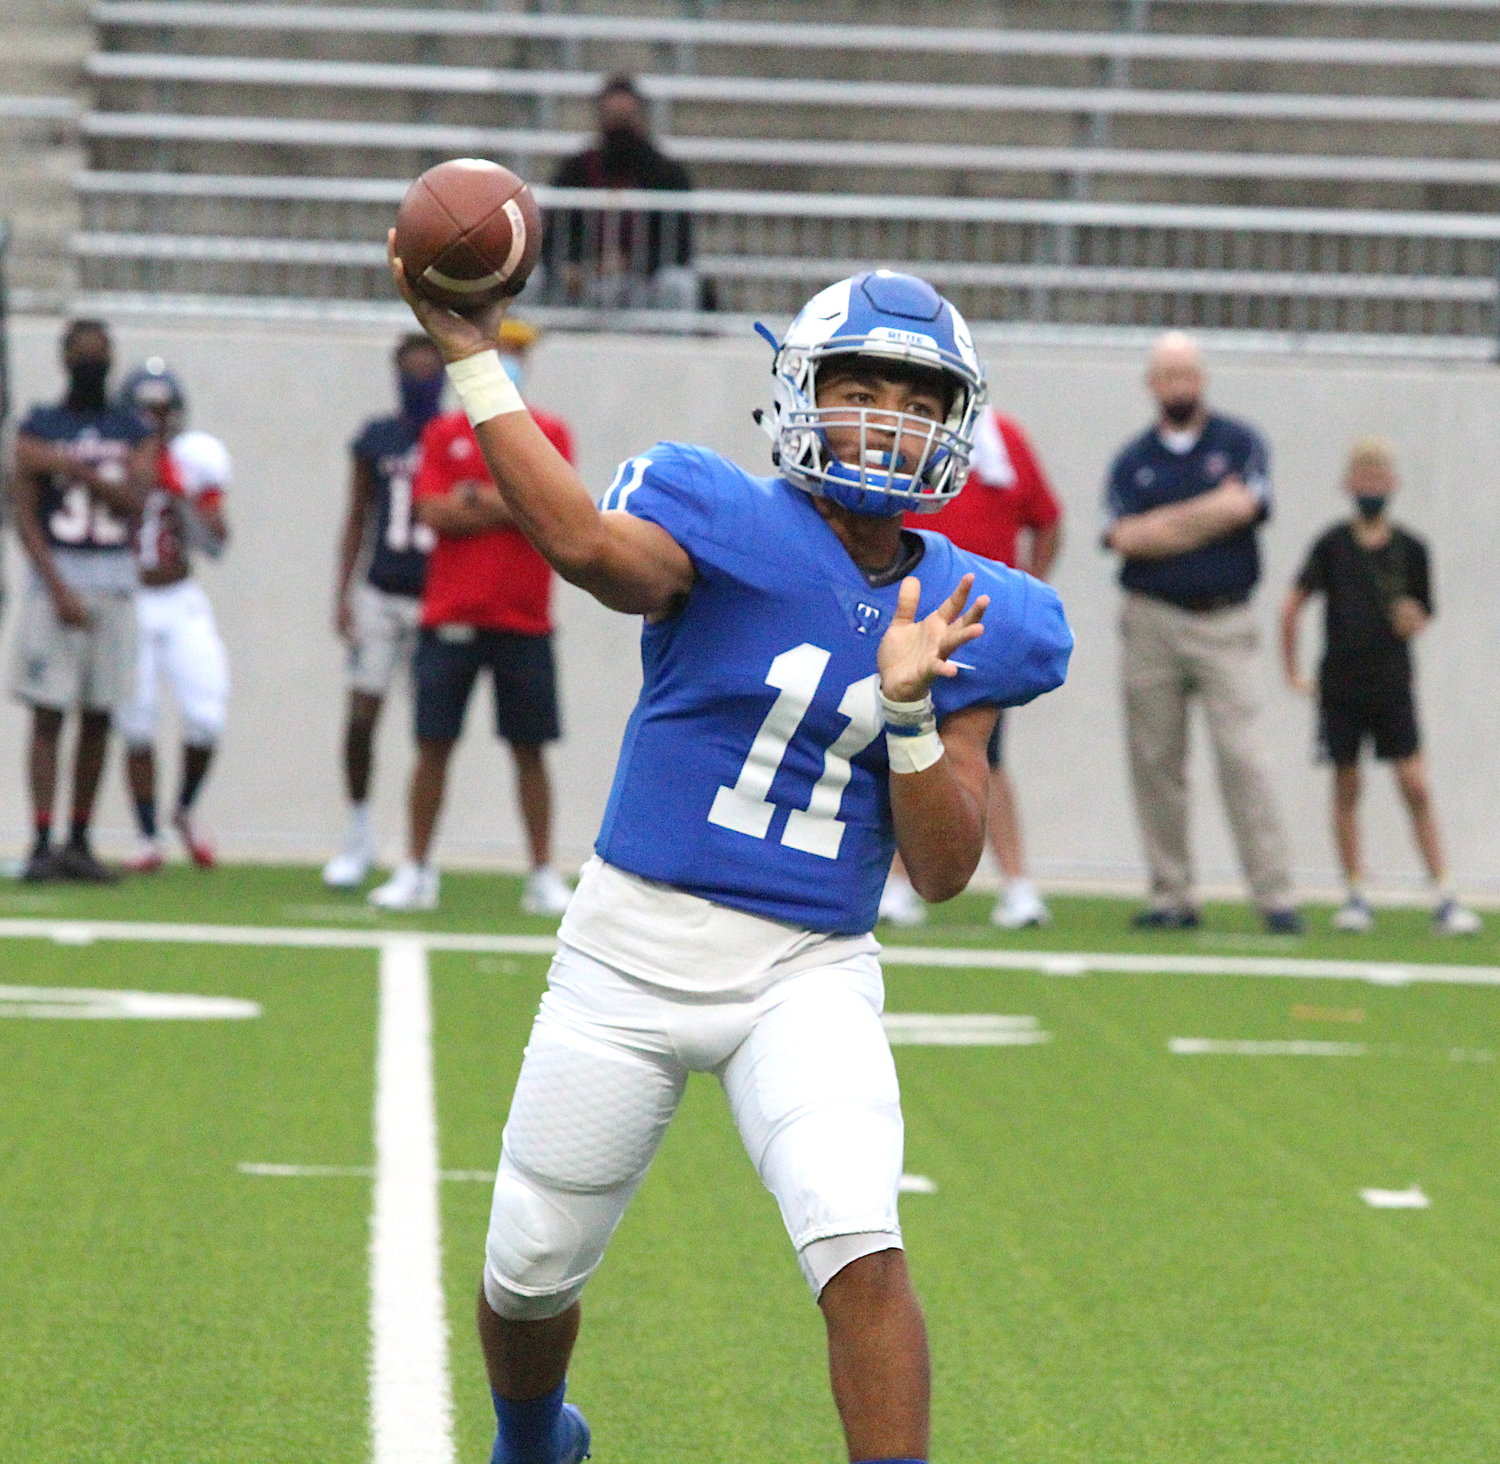 Taylor senior quarterback J Jensen III completed 15 of 17 passes for 257 yards and two touchdowns and rushed for 34 yards and two more touchdowns in the Mustangs' 31-14 win over Morton Ranch on Oct. 10 at Legacy Stadium.